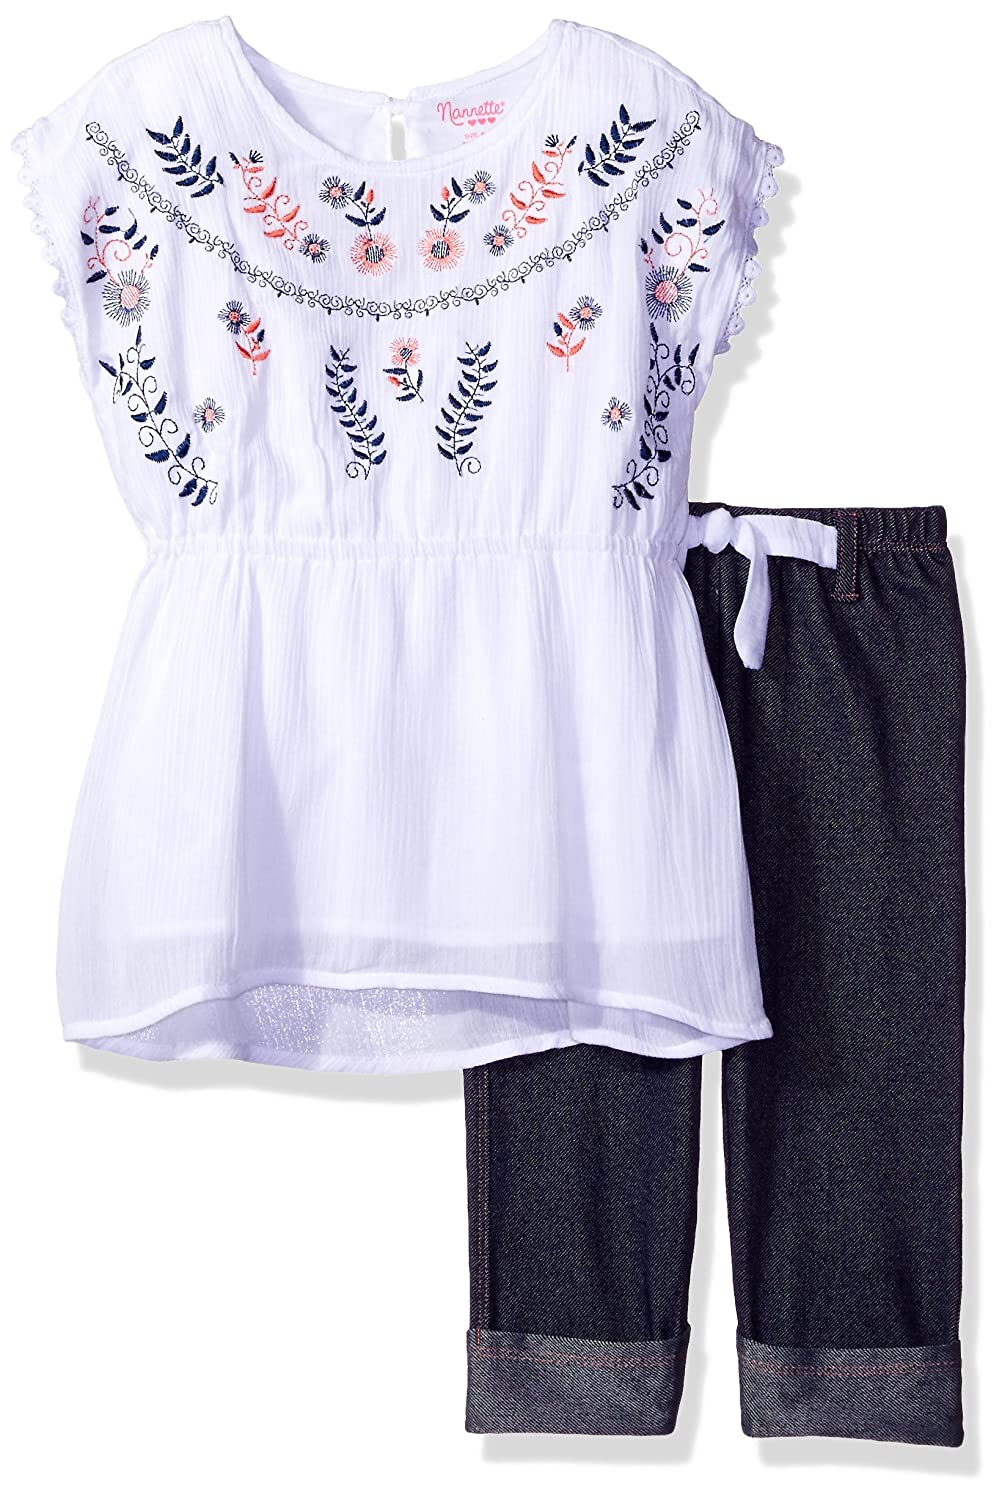 Nannette Girls 2 Piece Crinkle Gauze Top with Embroidery and Knit Denim Jegging